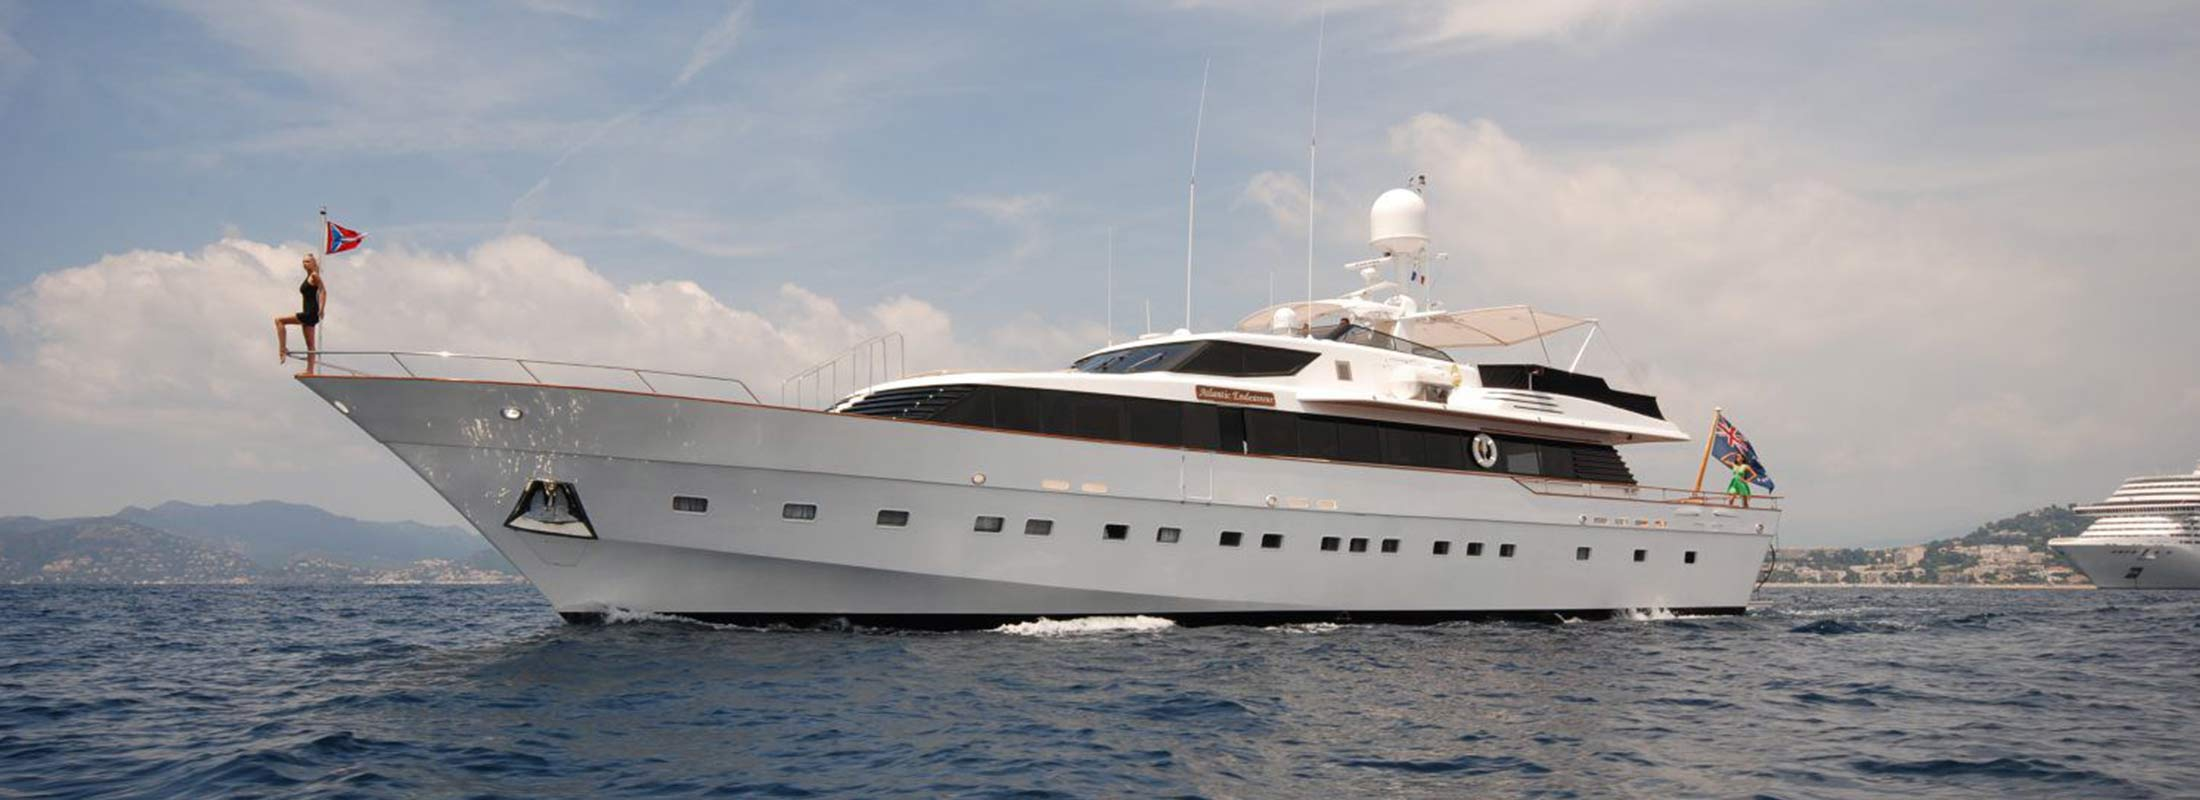 Atlantic Endeavour Motor Yacht for Charter Mediterranean slider 1